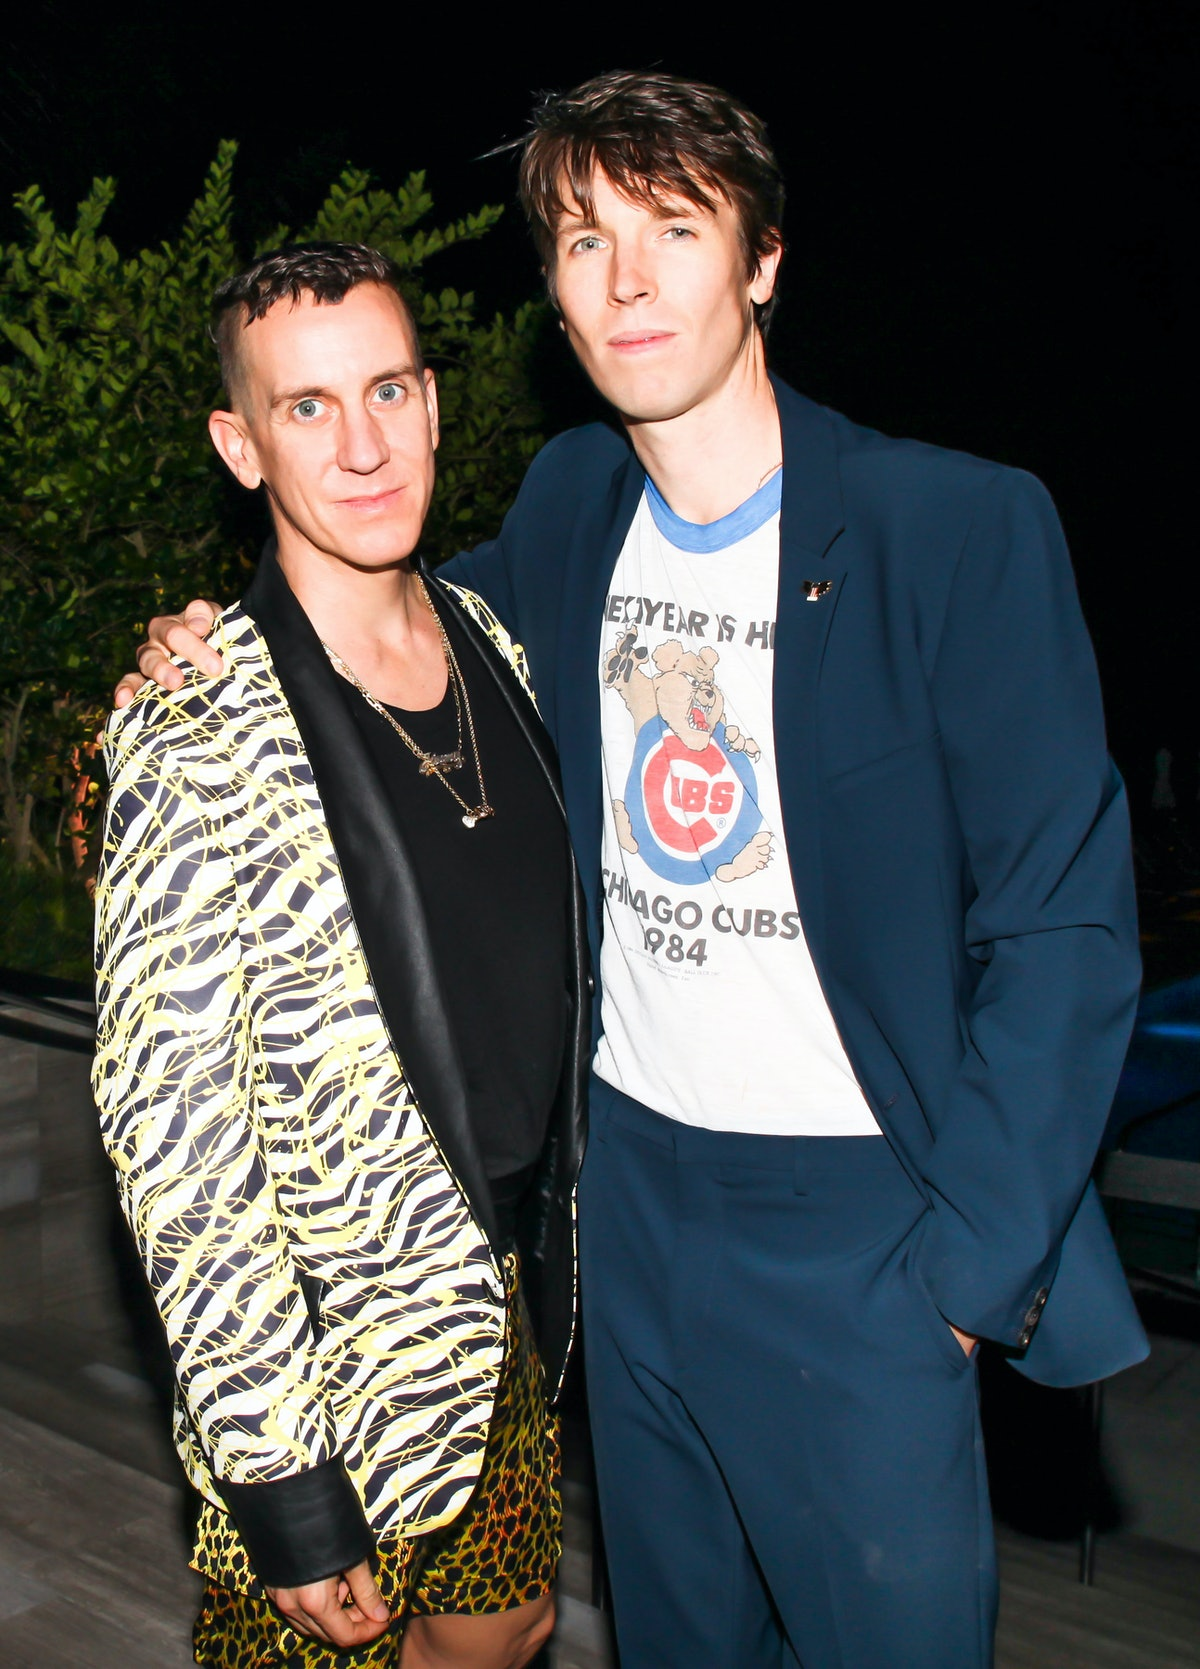 Jeremy Scott and Ryan McGinley attend the ACRIA and Paddle8 dinner in honor of Ryan McGinley